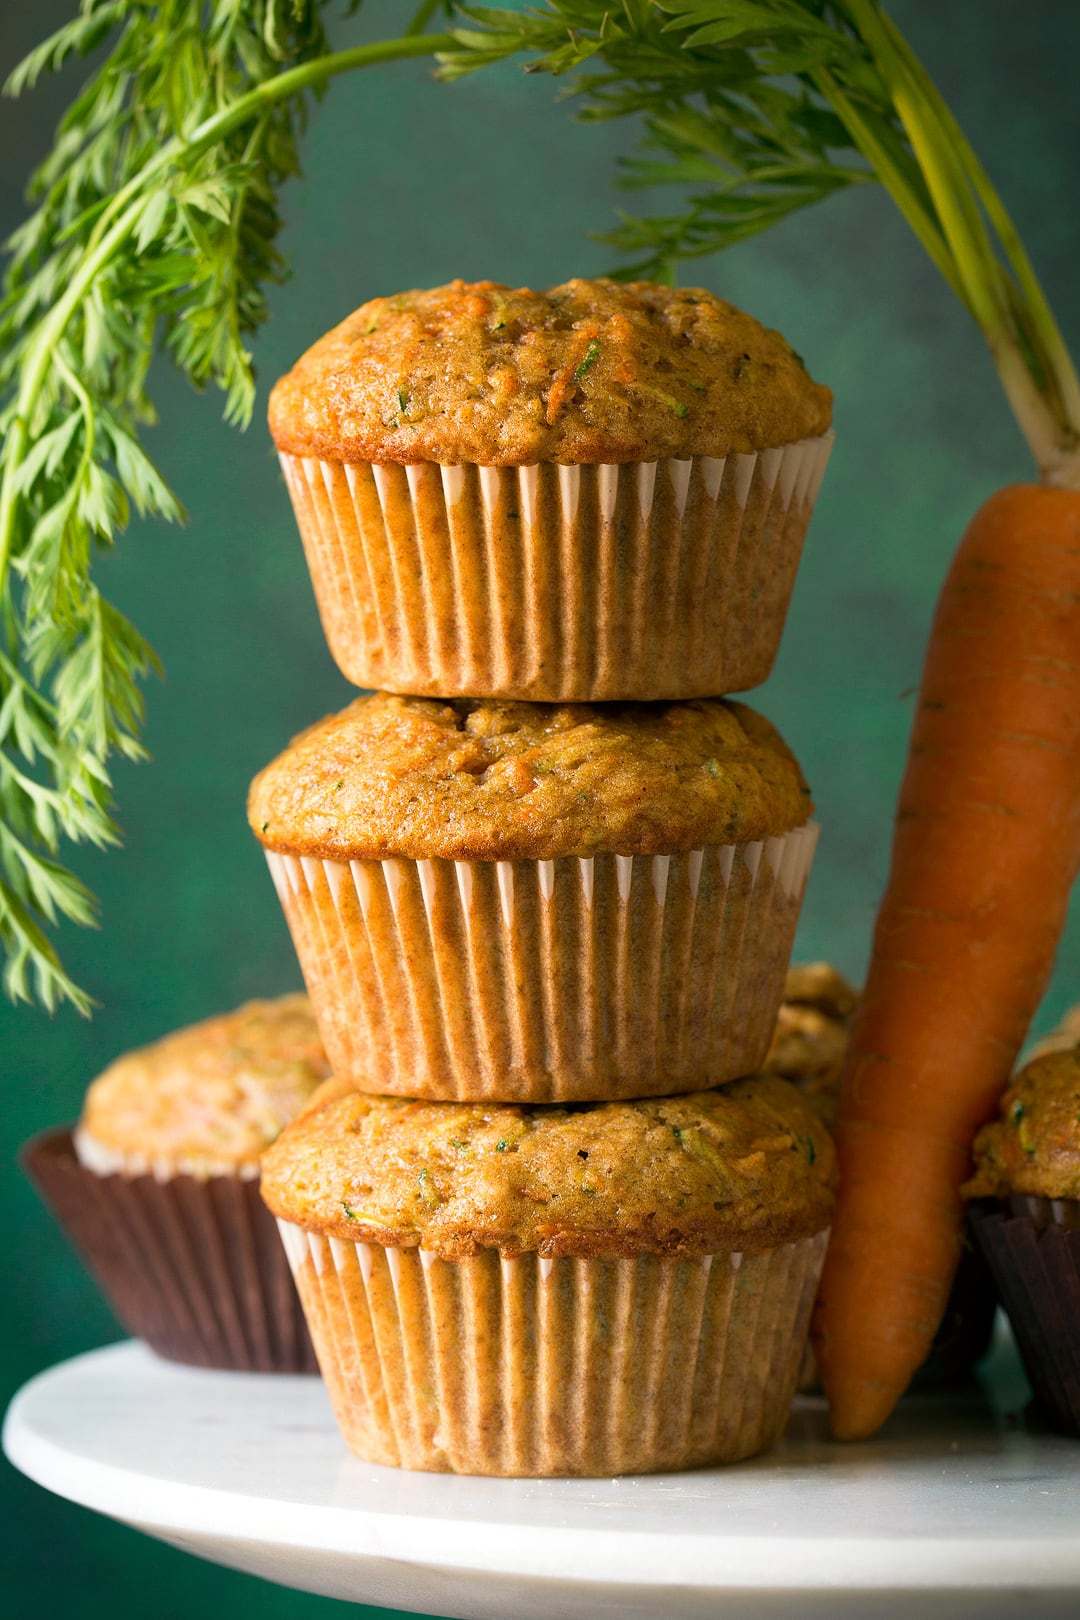 Muffins with Zucchini Carrots and Spices